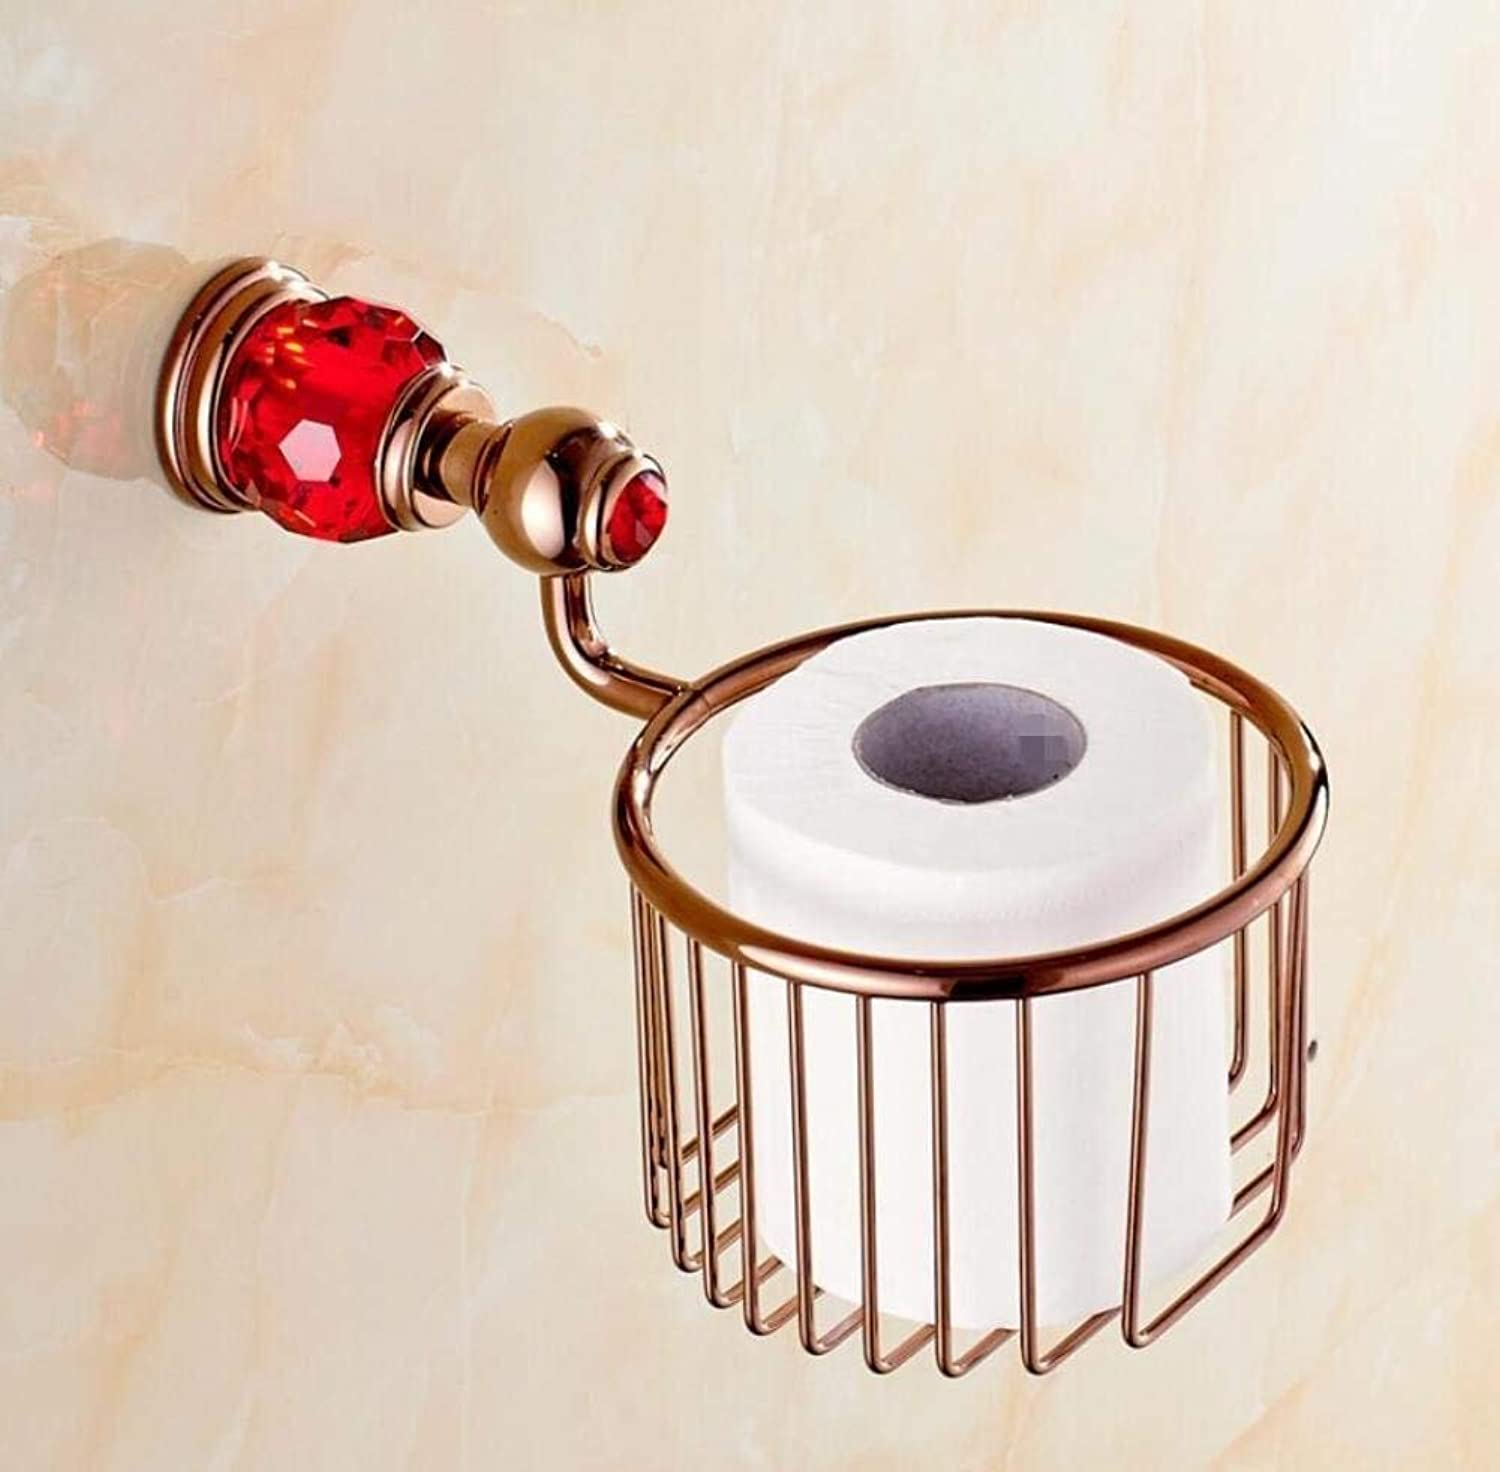 Paper Towels Copper Crystal Shopping Cart Door-Paper, Toilet Paper European-Style Bathroom Cylinder-Paper Door Door-Roll Paper Towels Modern Pendant,A,9  13cm